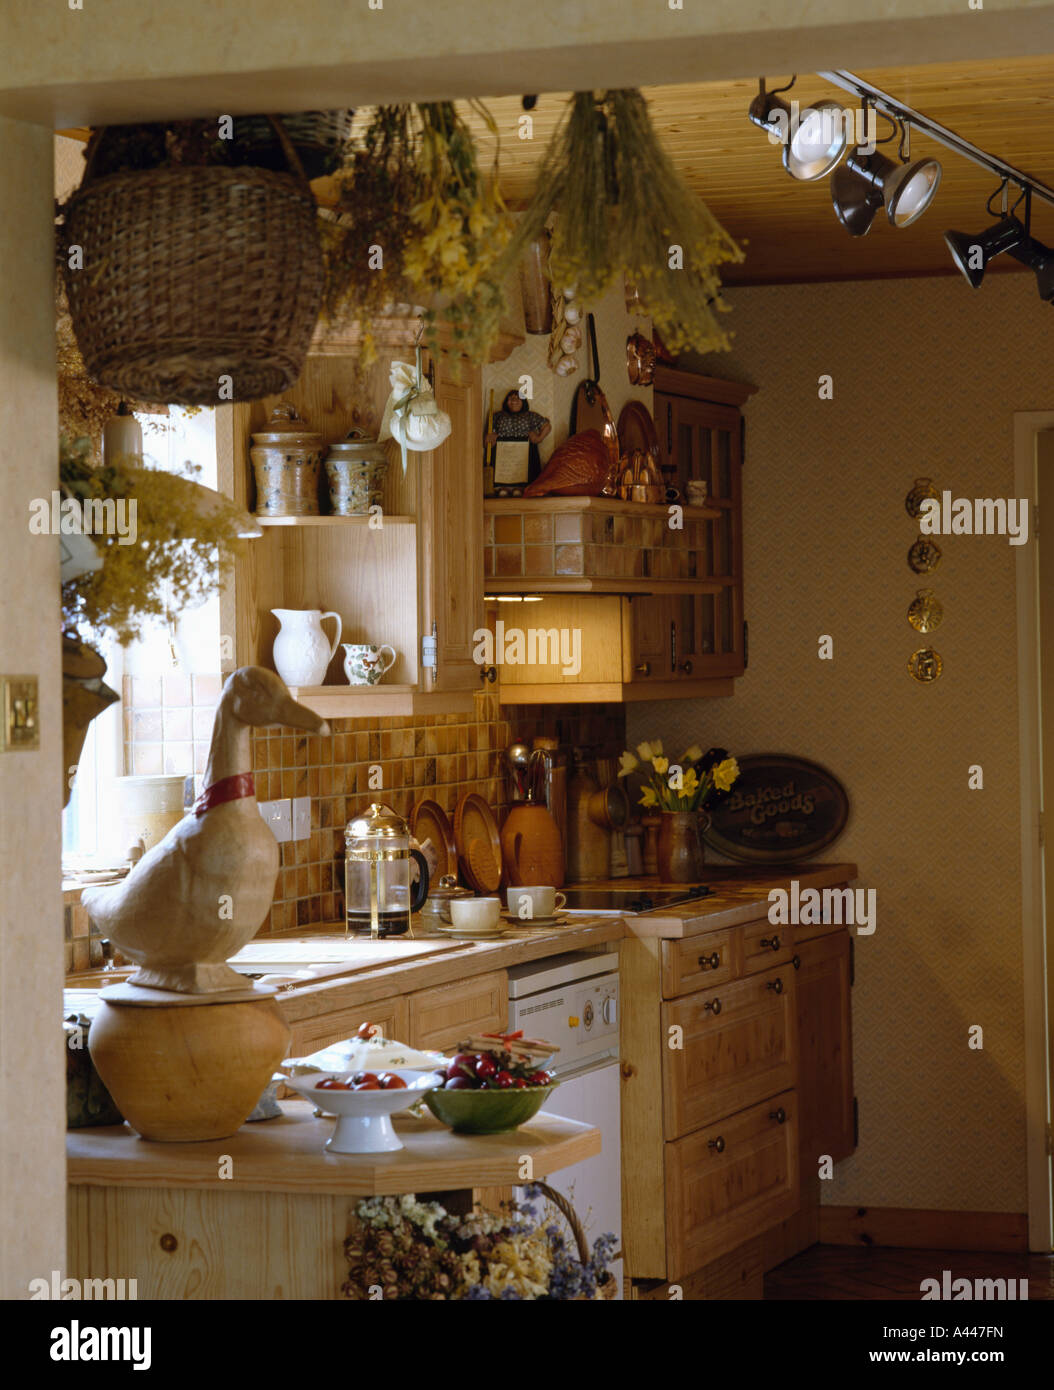 kitchen ceiling spot lighting. Small Cottage Kitchen With Dried Flowers On Ceiling And Spot-lights Spot Lighting K